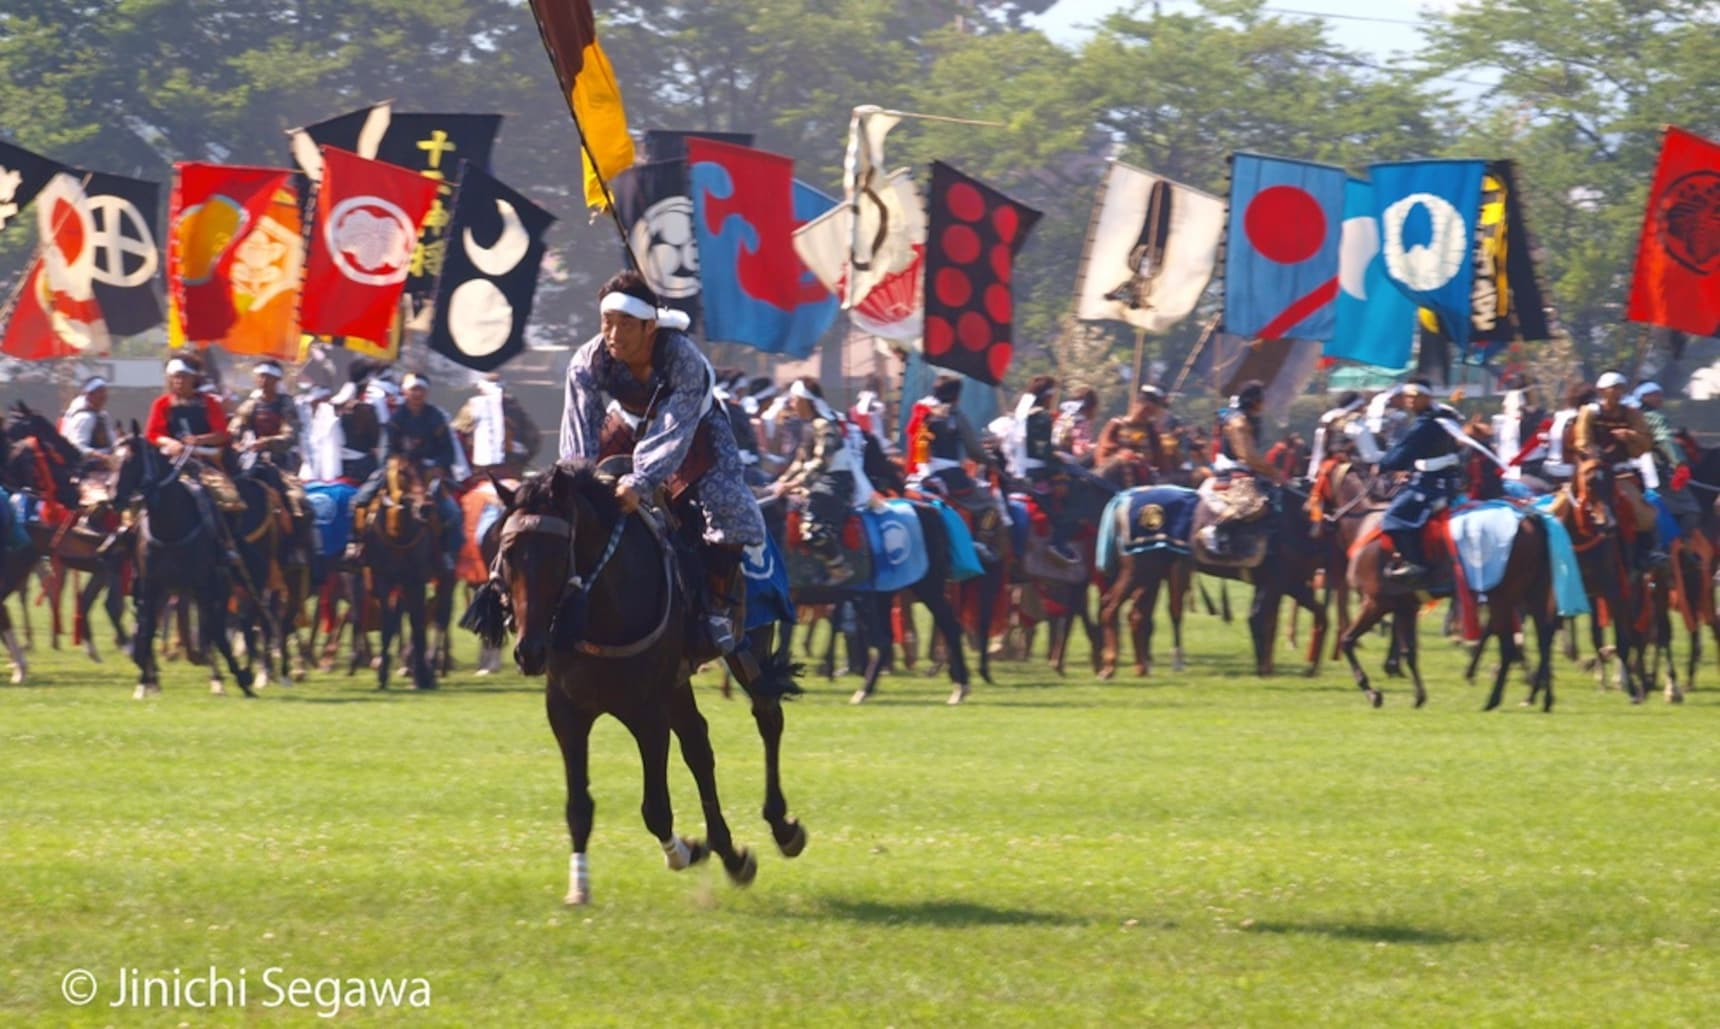 See Samurai Up Close—On Horseback!